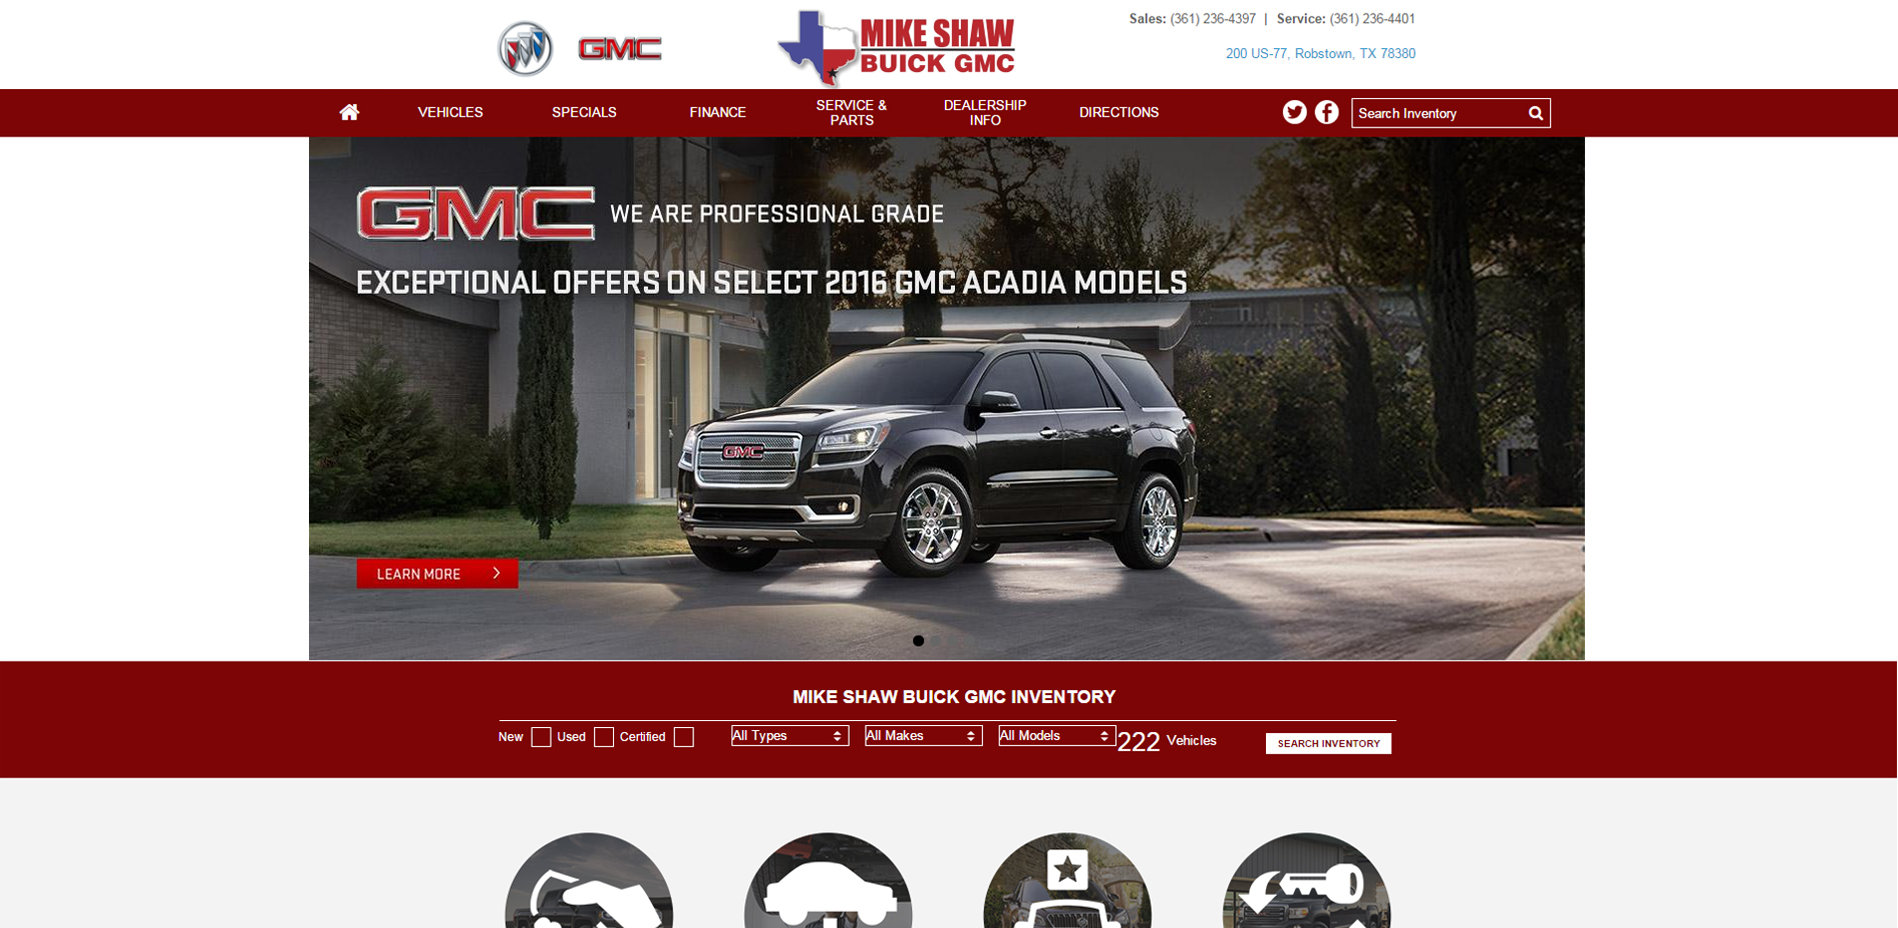 Mike Shaw Buick GMC, featured